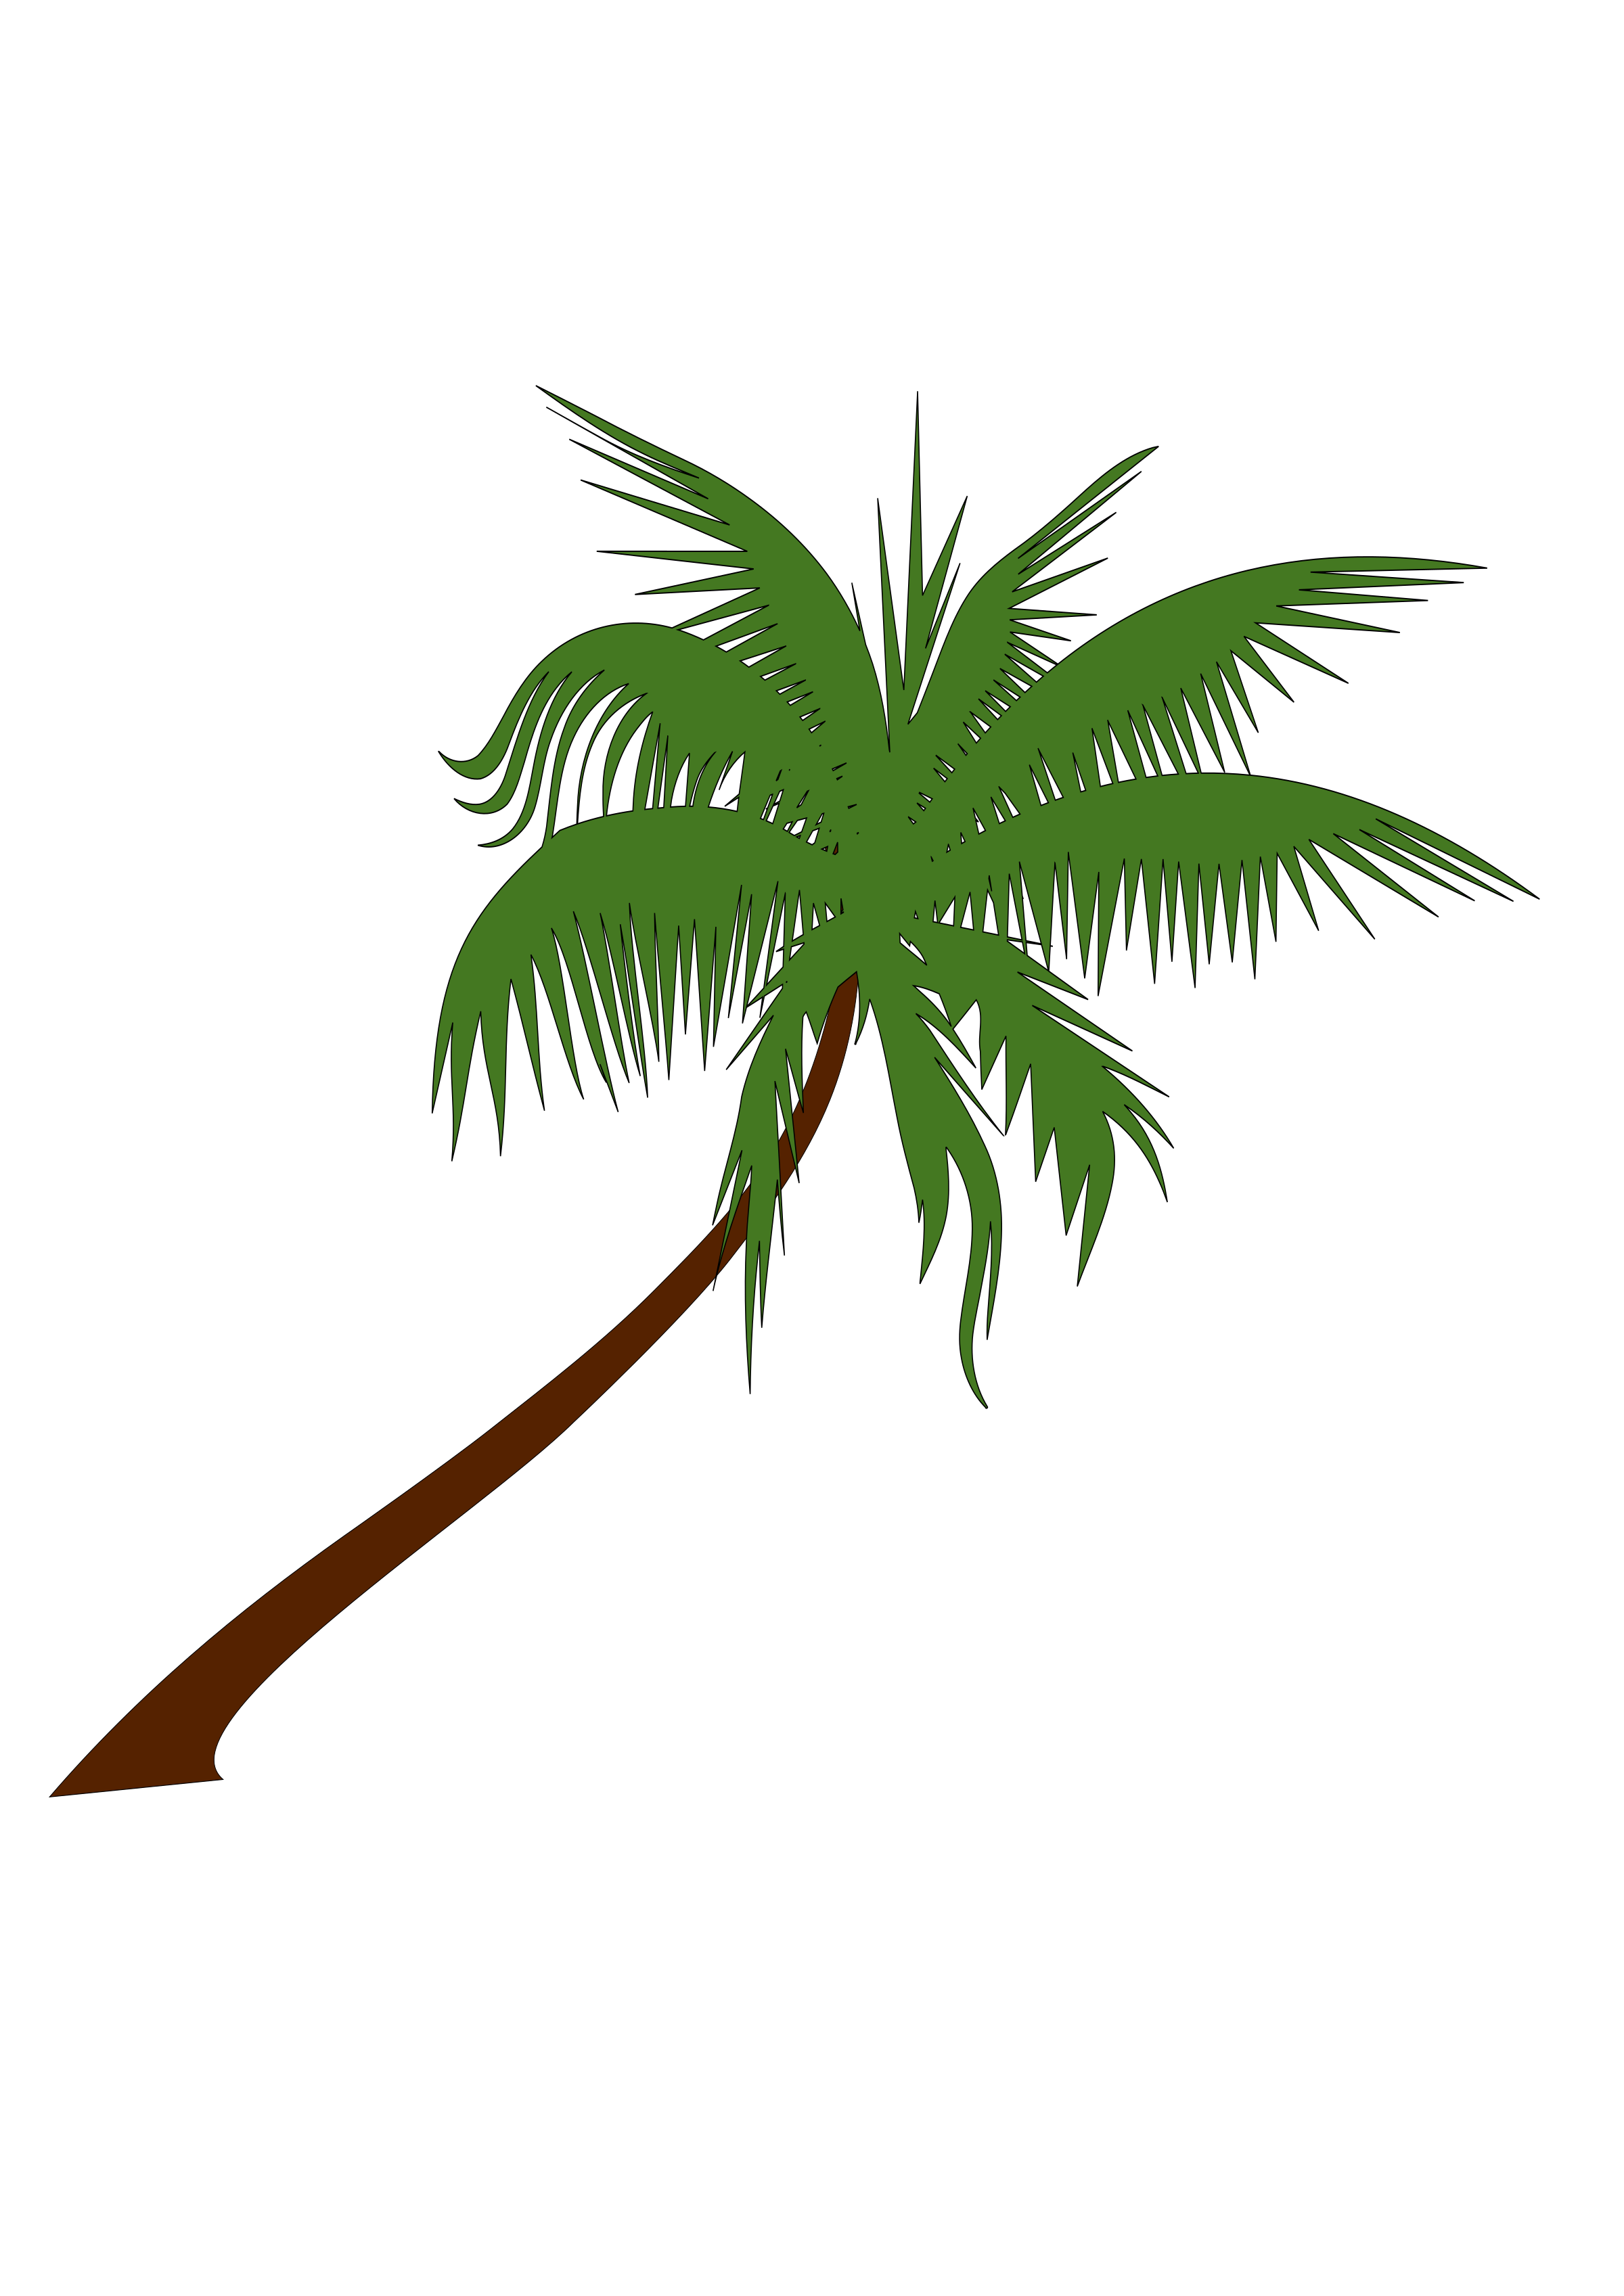 Tree clipart buko. Coconut png images transparent